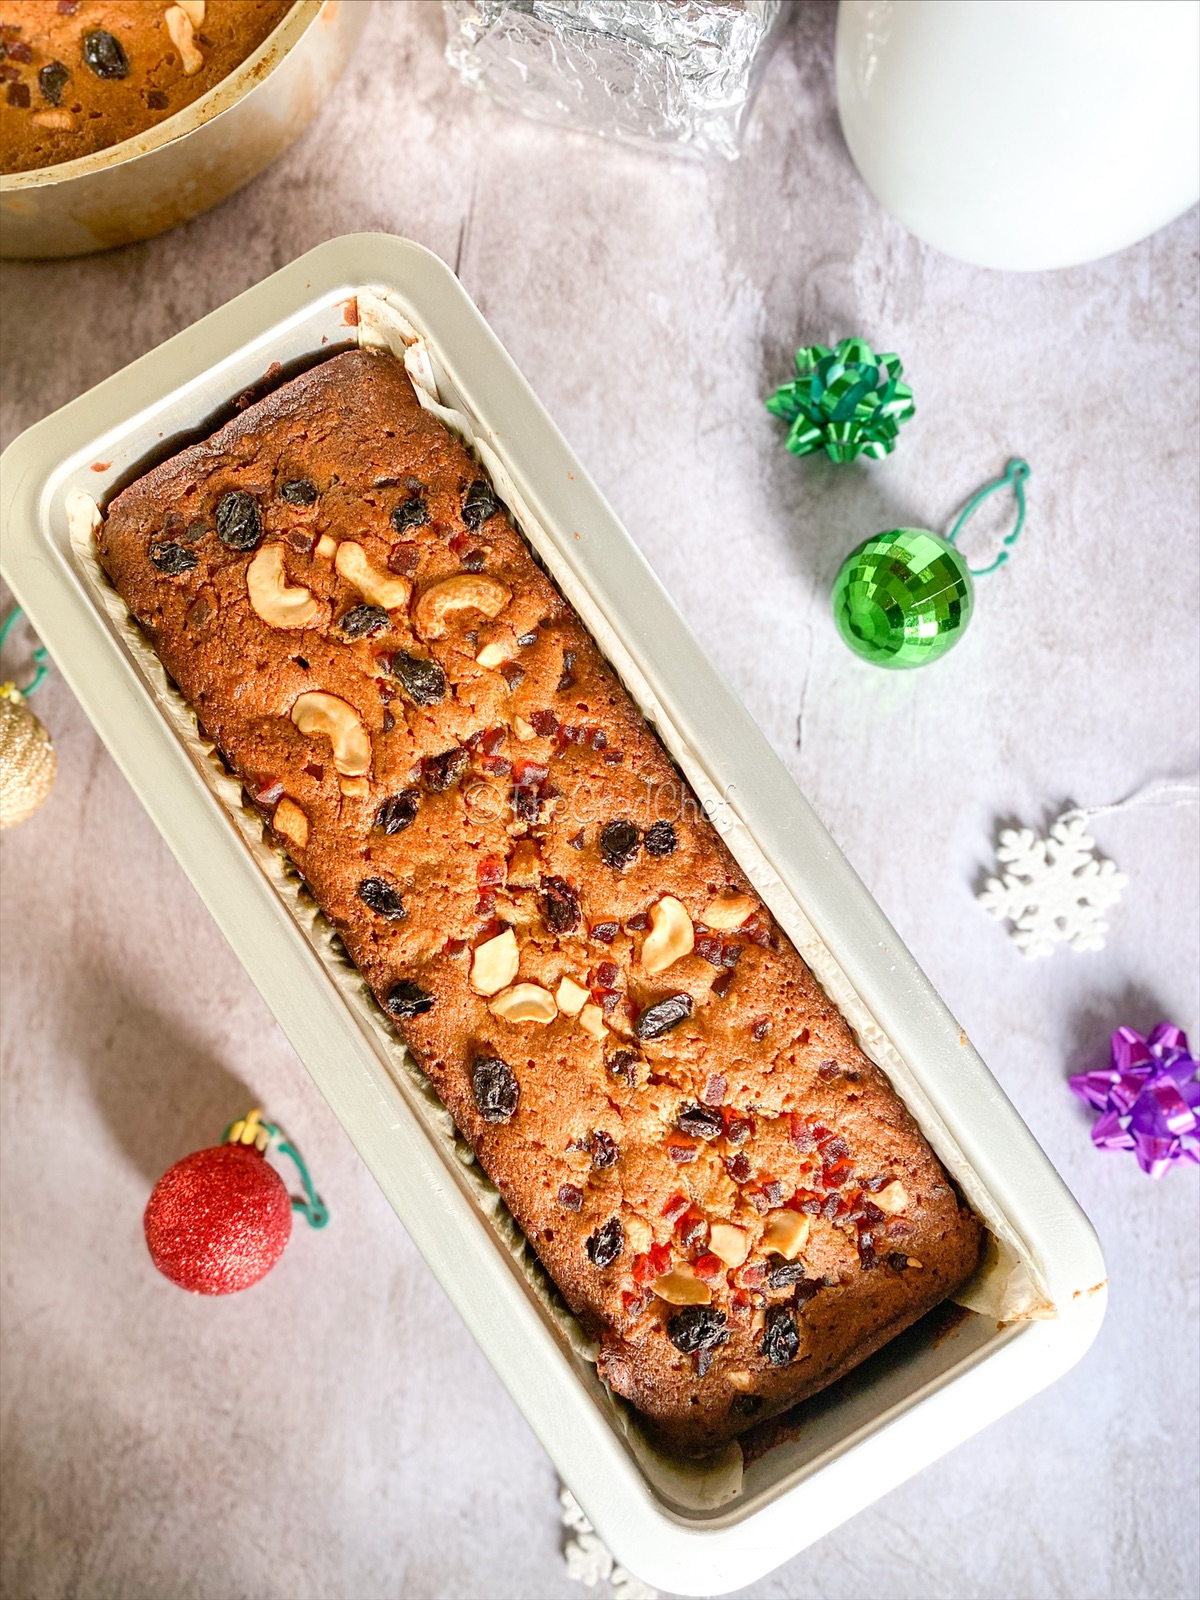 HOLIDAY FRUITCAKE